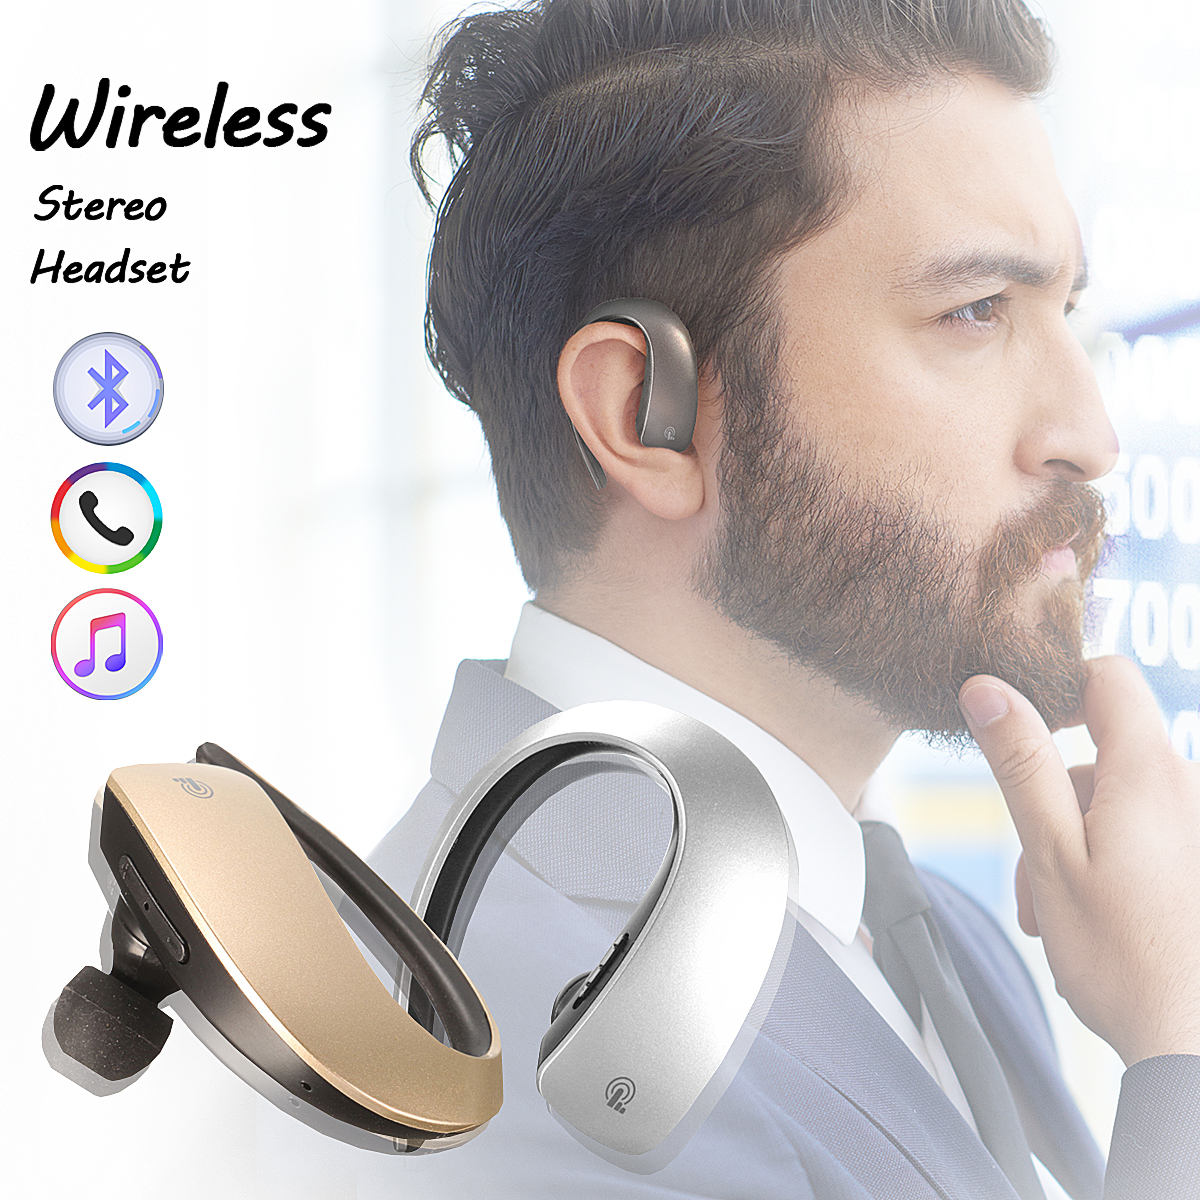 Fashsion Wireless Bluetooth V4.1 Earhook Handsfree Sports Stereo Headset Earphone Earbud [Color: Gray, Silver, Gold]